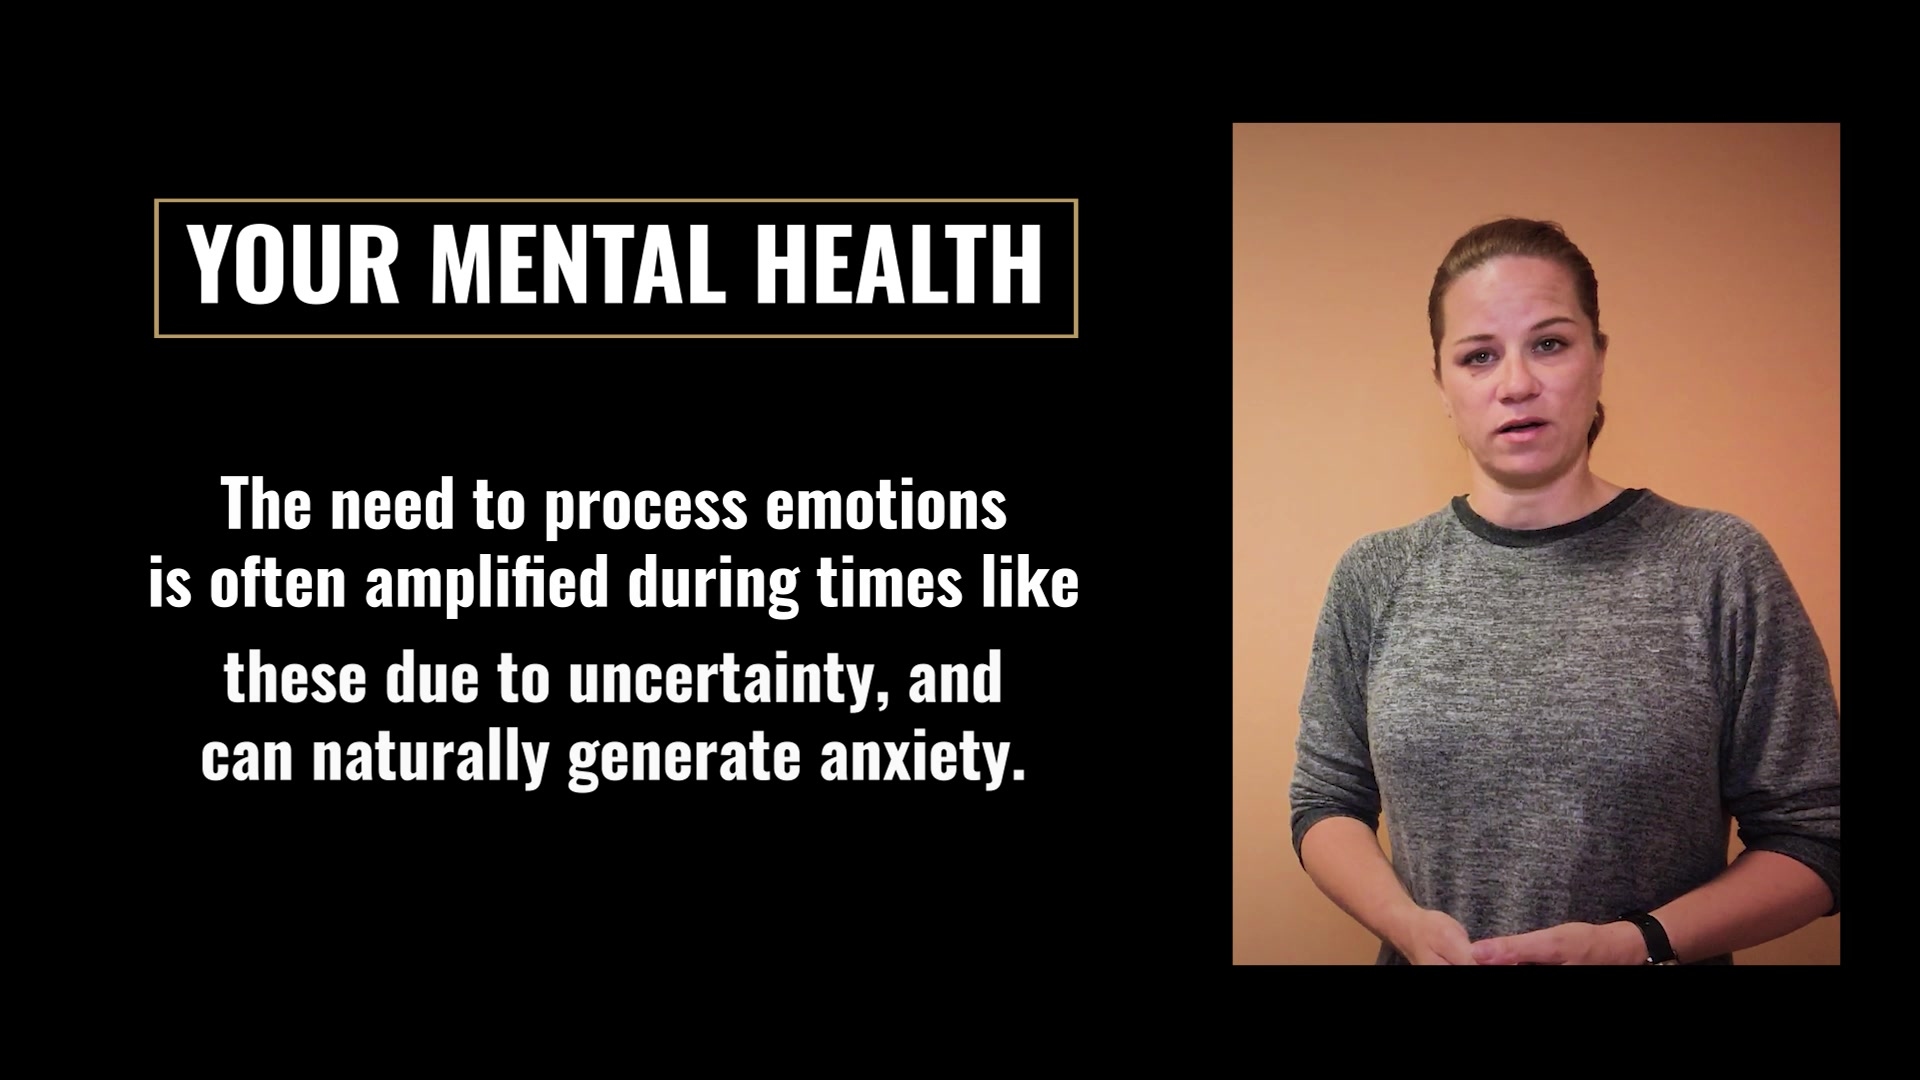 This video reminds the workforce of Marine Corps Logistics Command of the importance that self-care has to well-being during difficult times and offers a few tips on how to maintain balance.